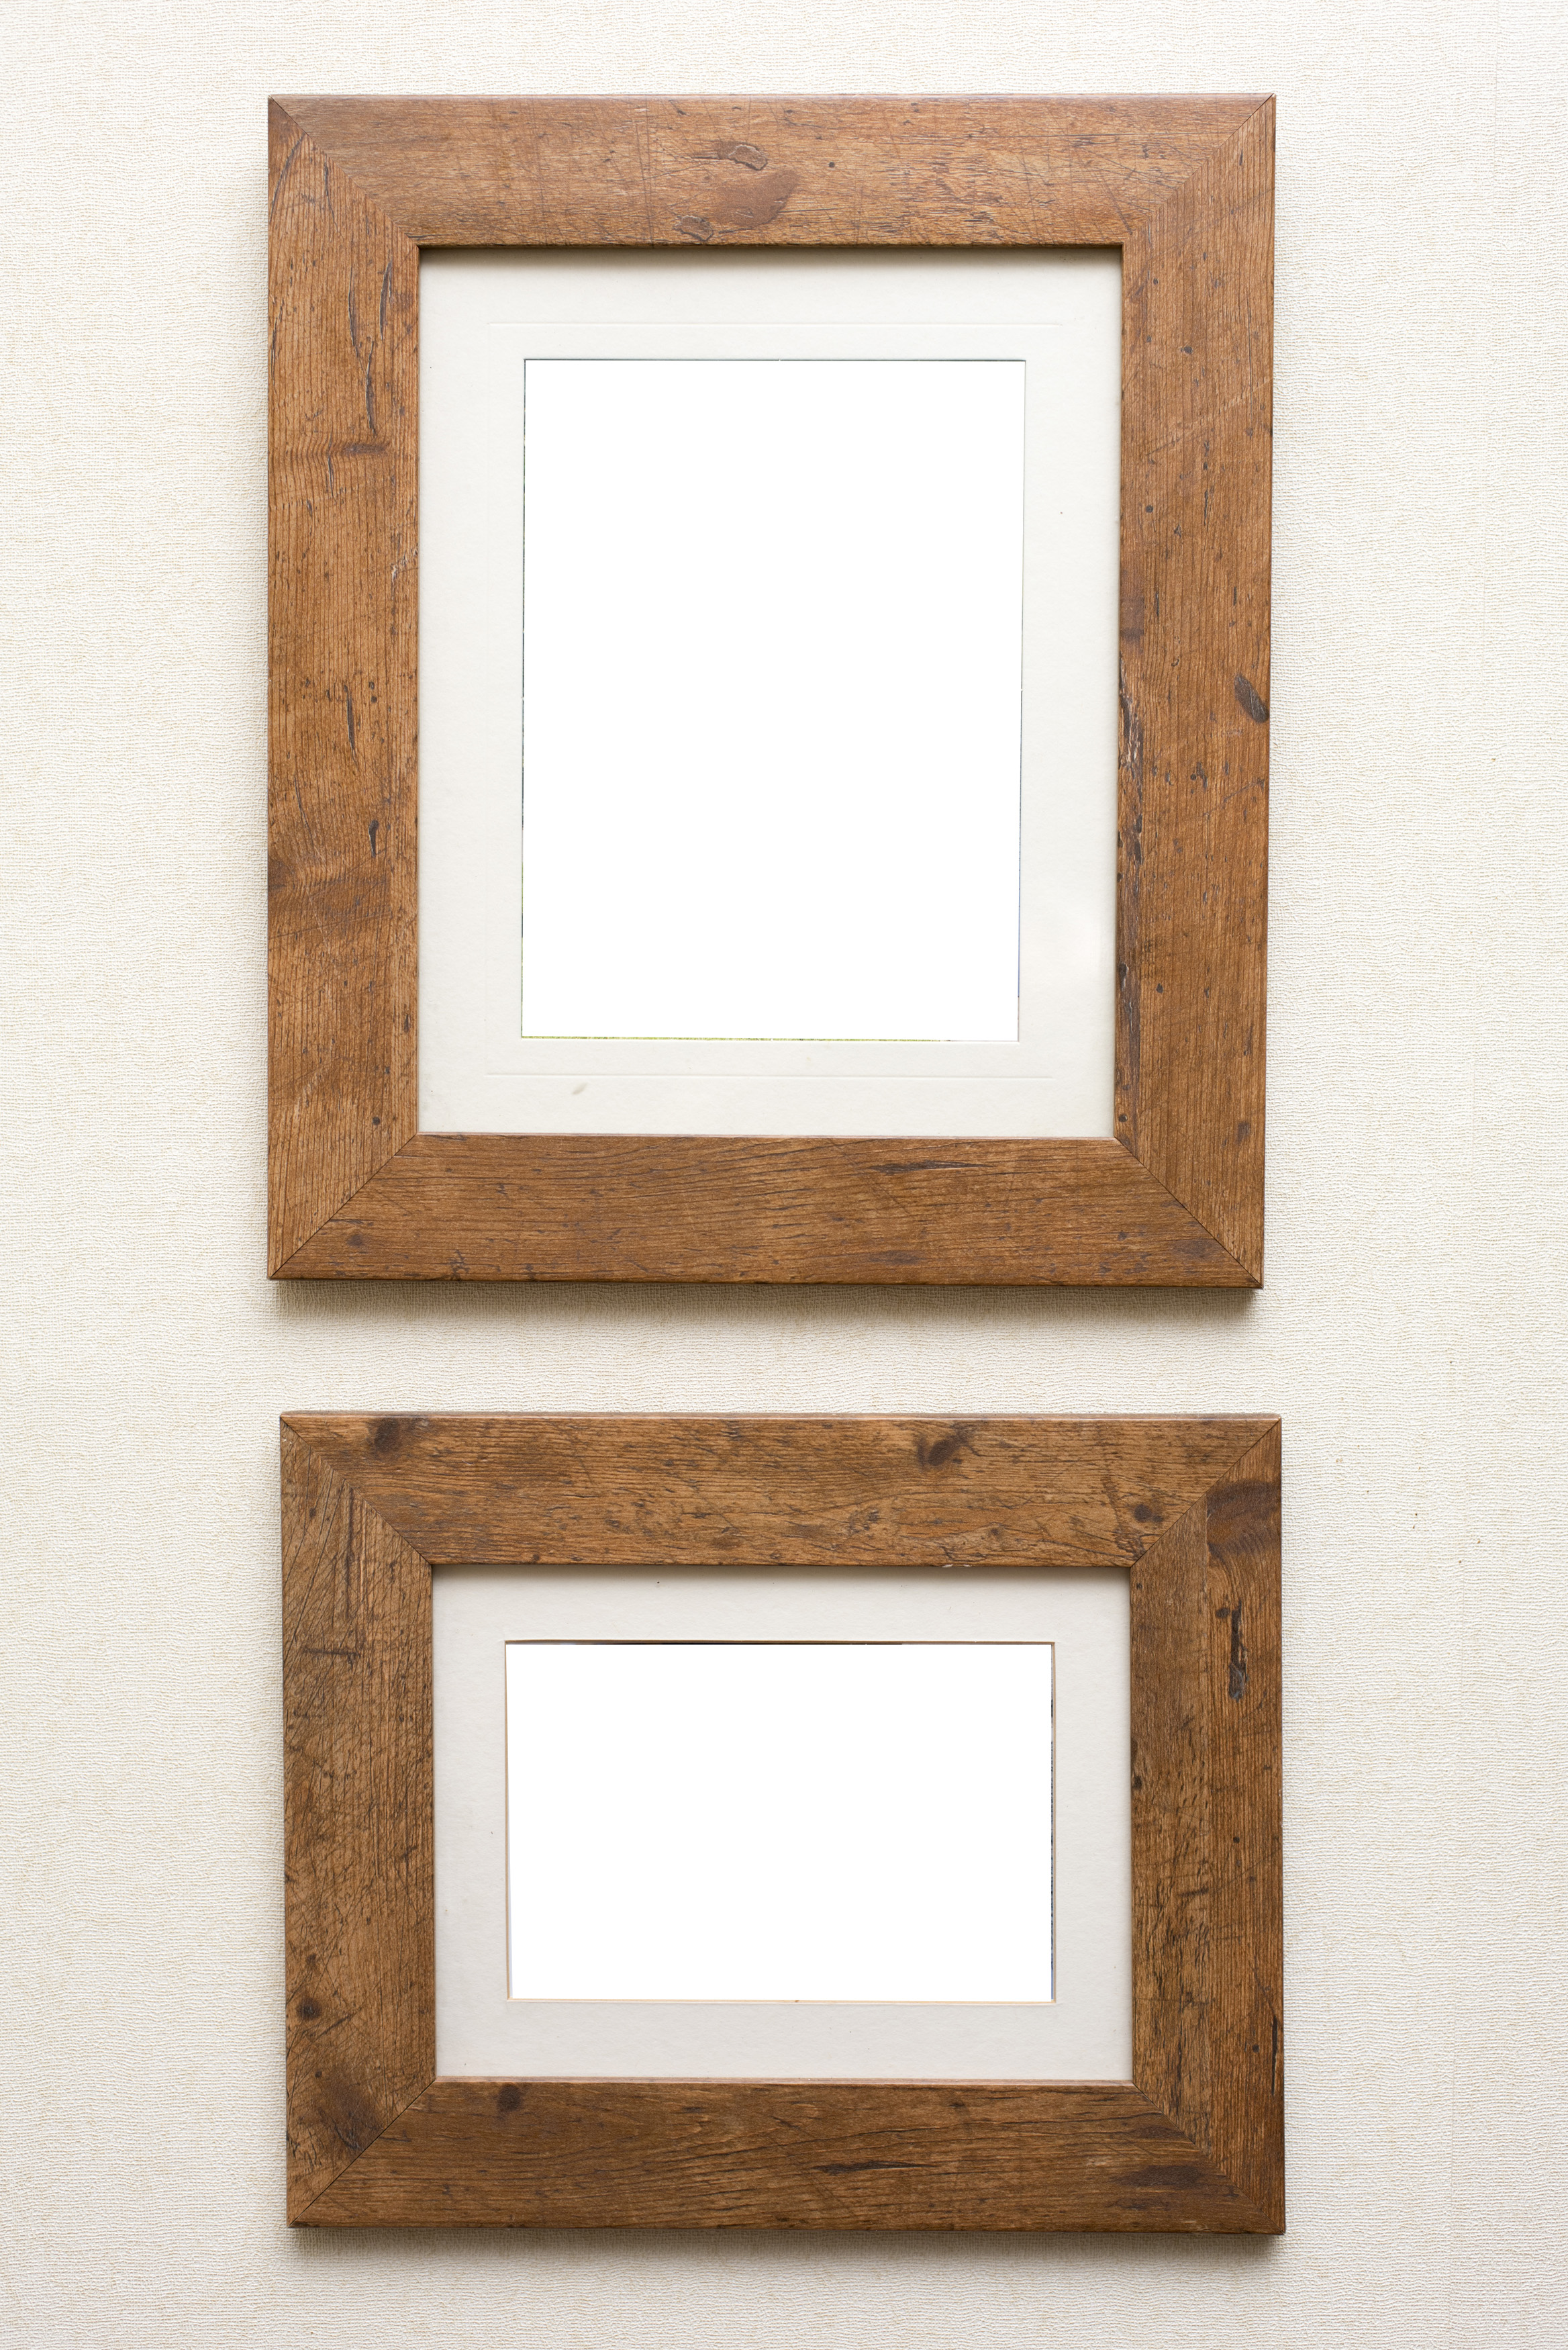 Free image of Two empty rustic wooden frames